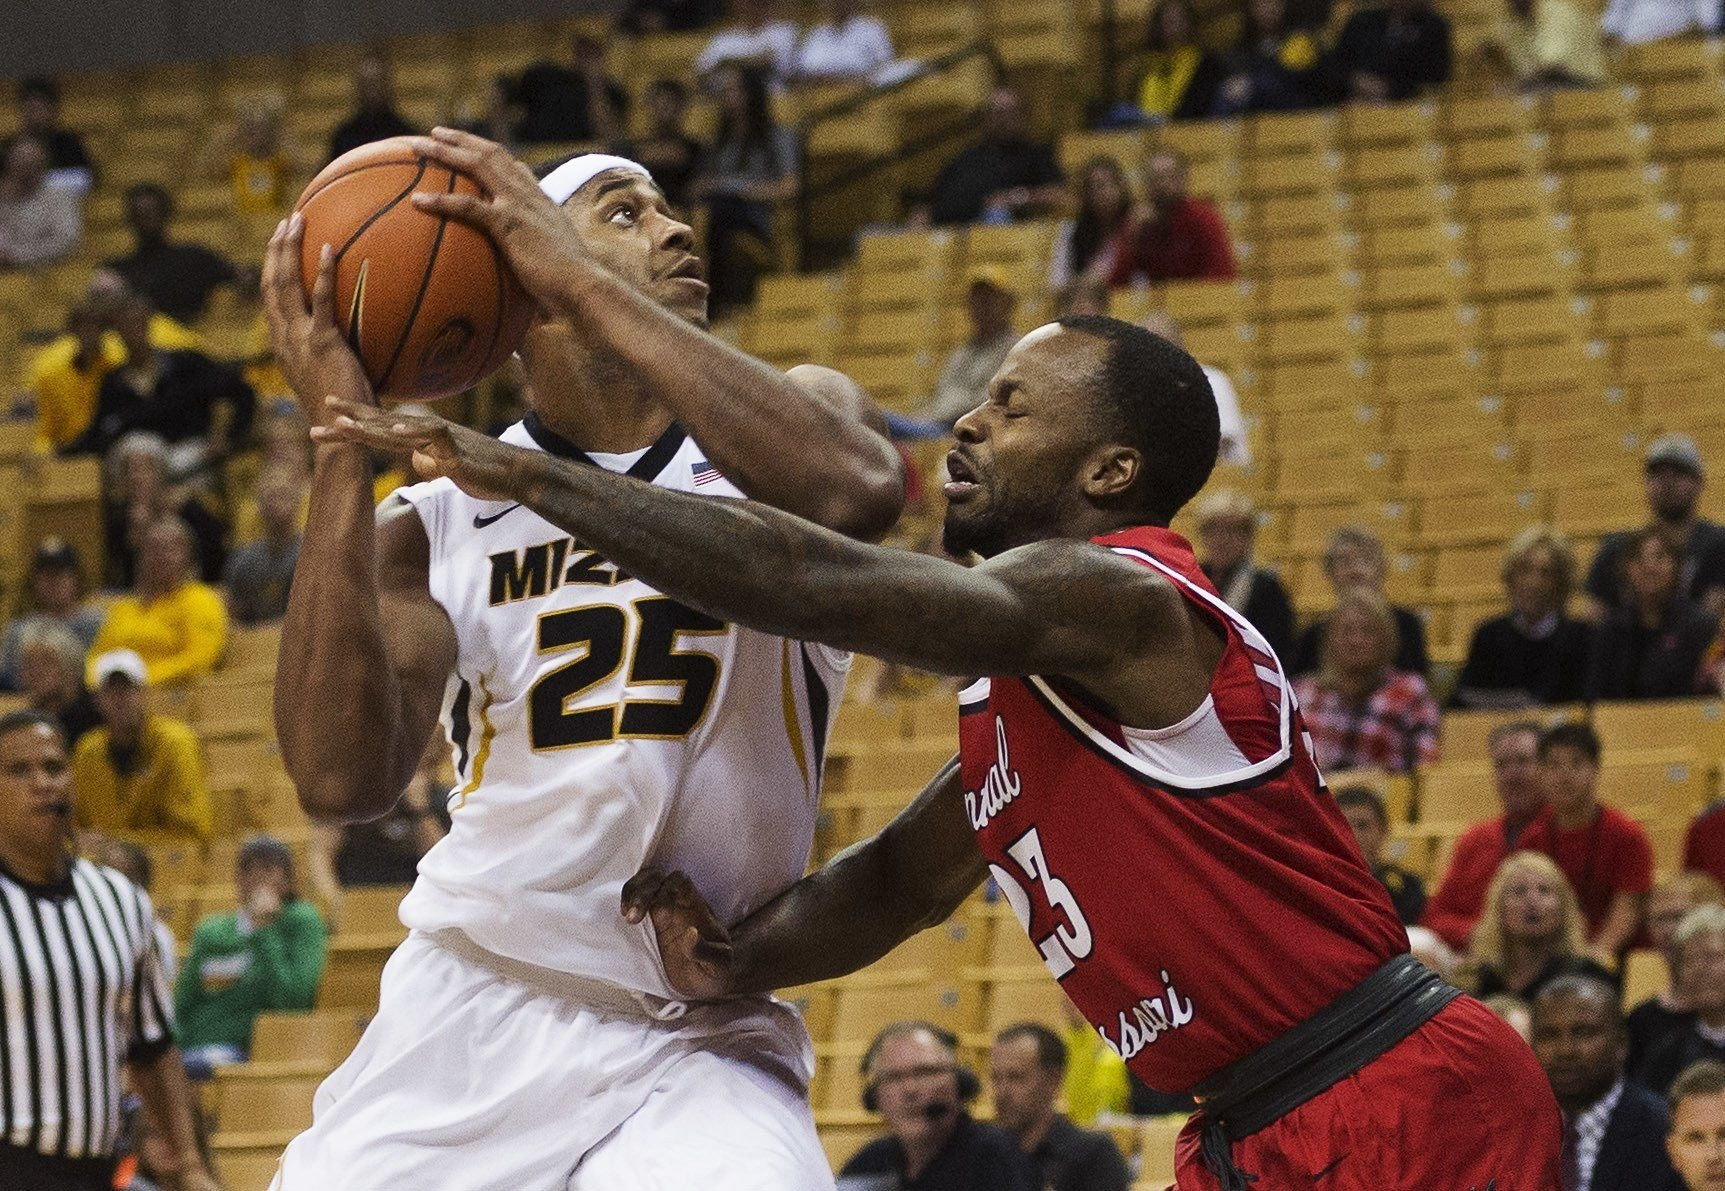 Benfred: Mizzou pulls out ugly win vs. Central Missouri